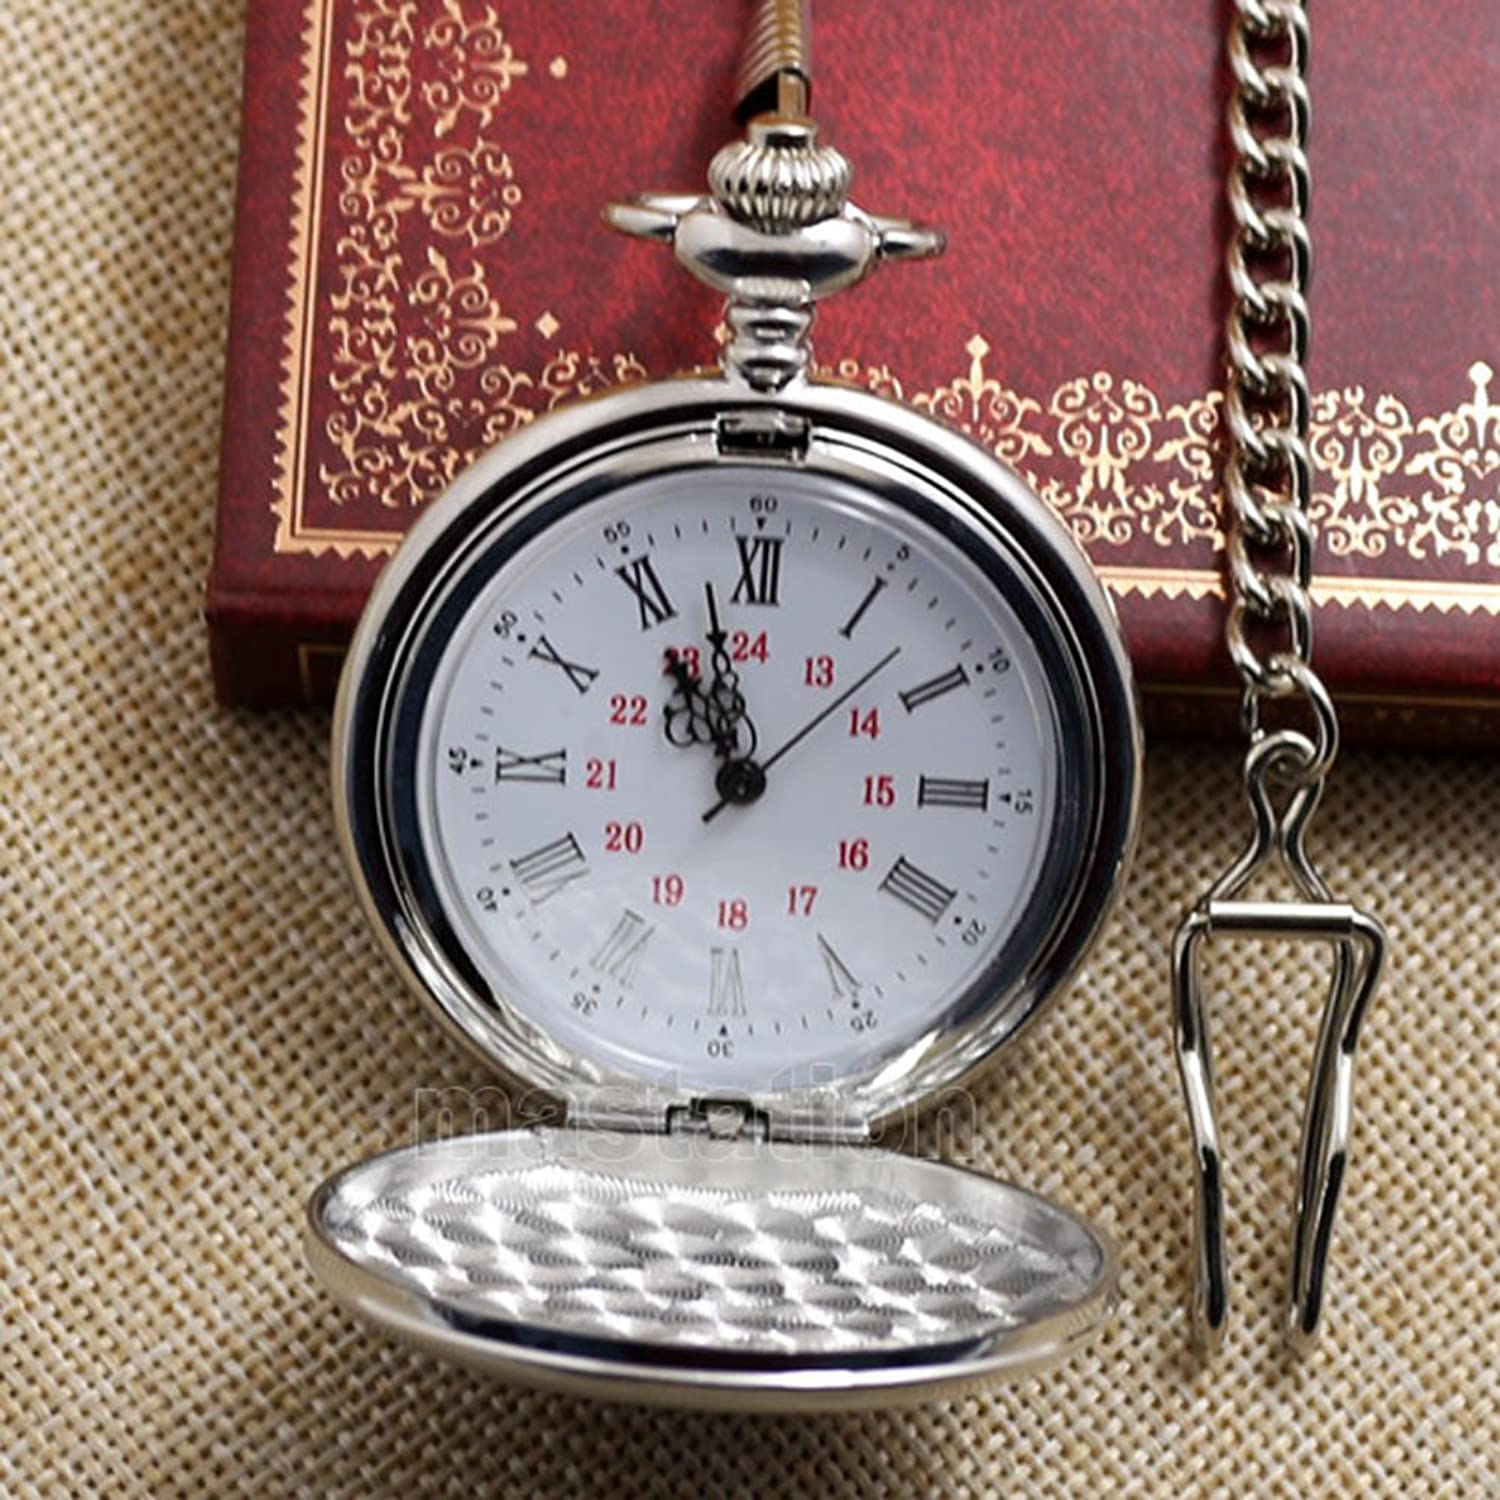 Men's Steampunk Clothing, Costumes, Fashion WIOR Classic Smooth Vintage Pocket Watch Sliver Steel Men Watch with 14'' Chain for Xmas Fathers Day Gift $9.99 AT vintagedancer.com